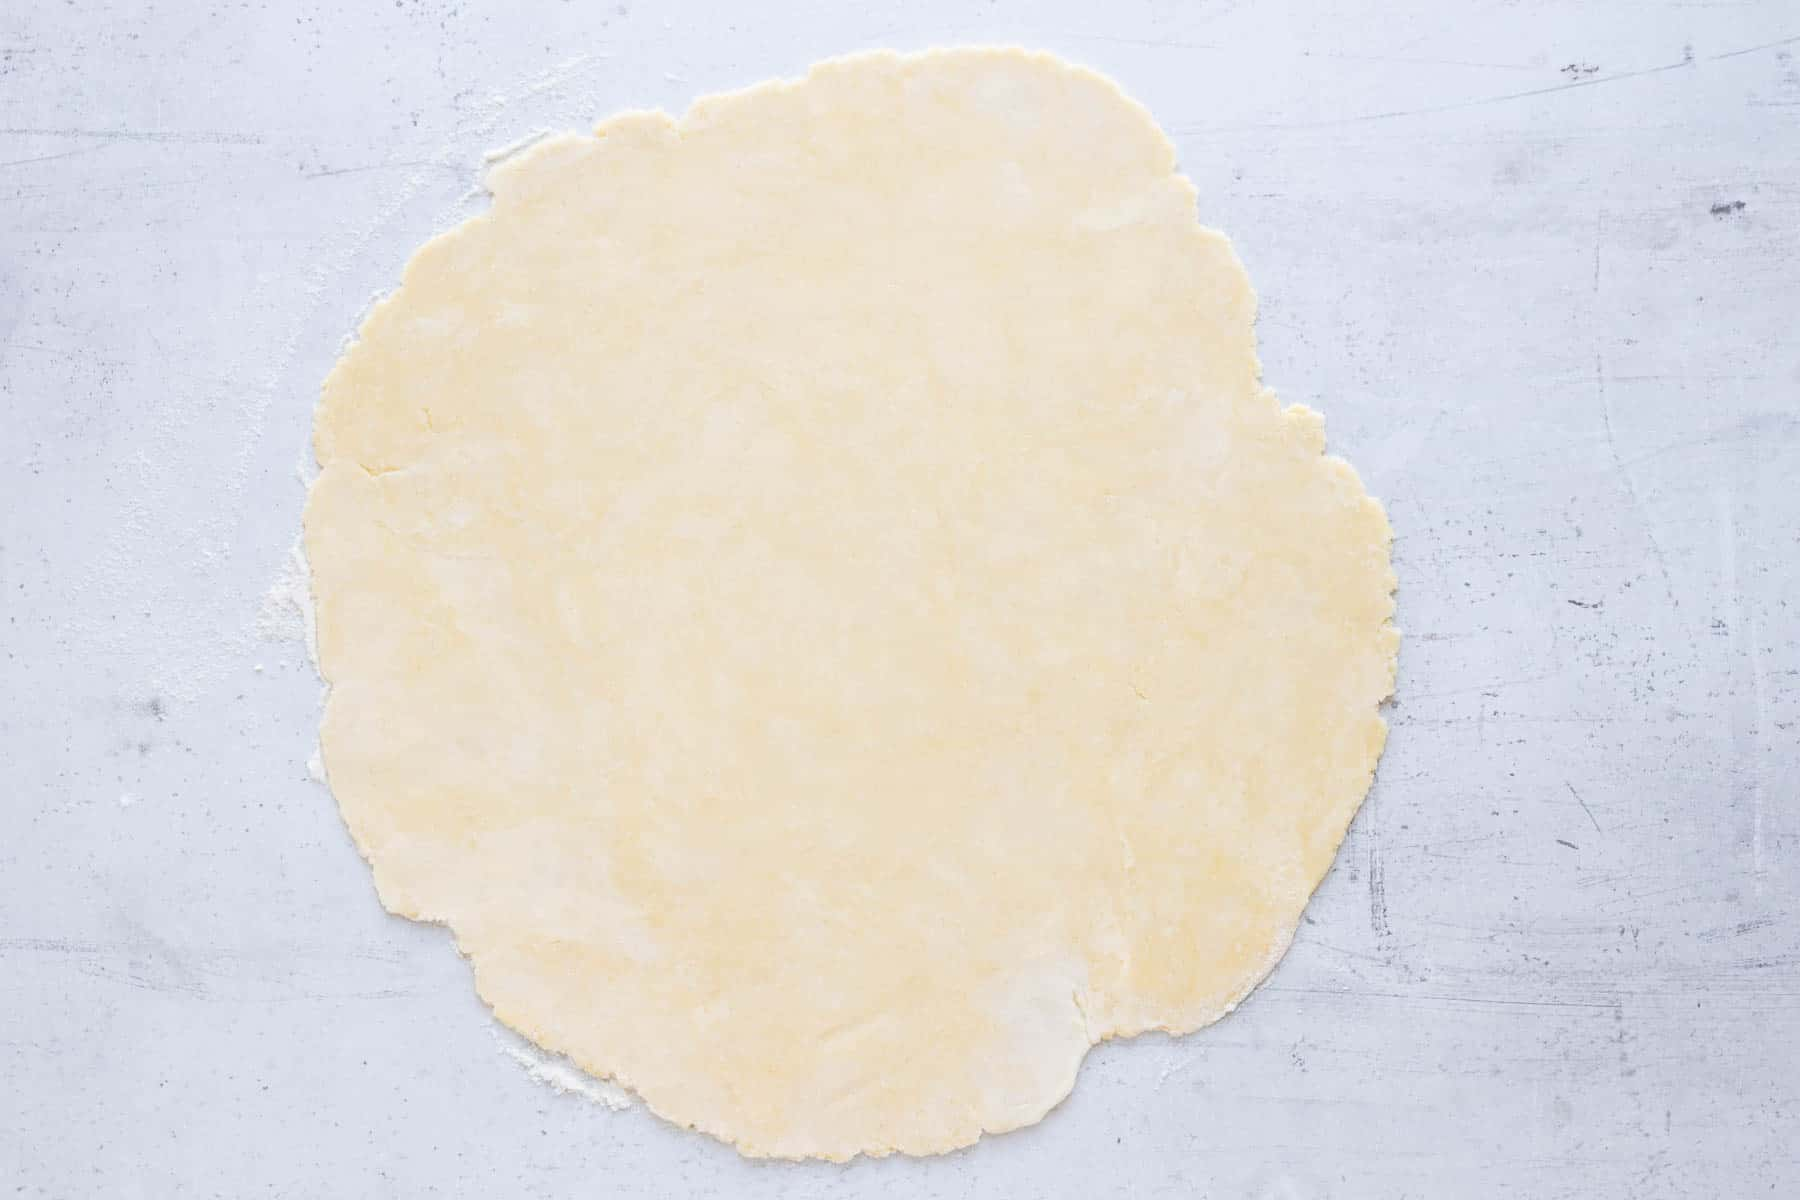 homemade pie crust rolled out on marble counter